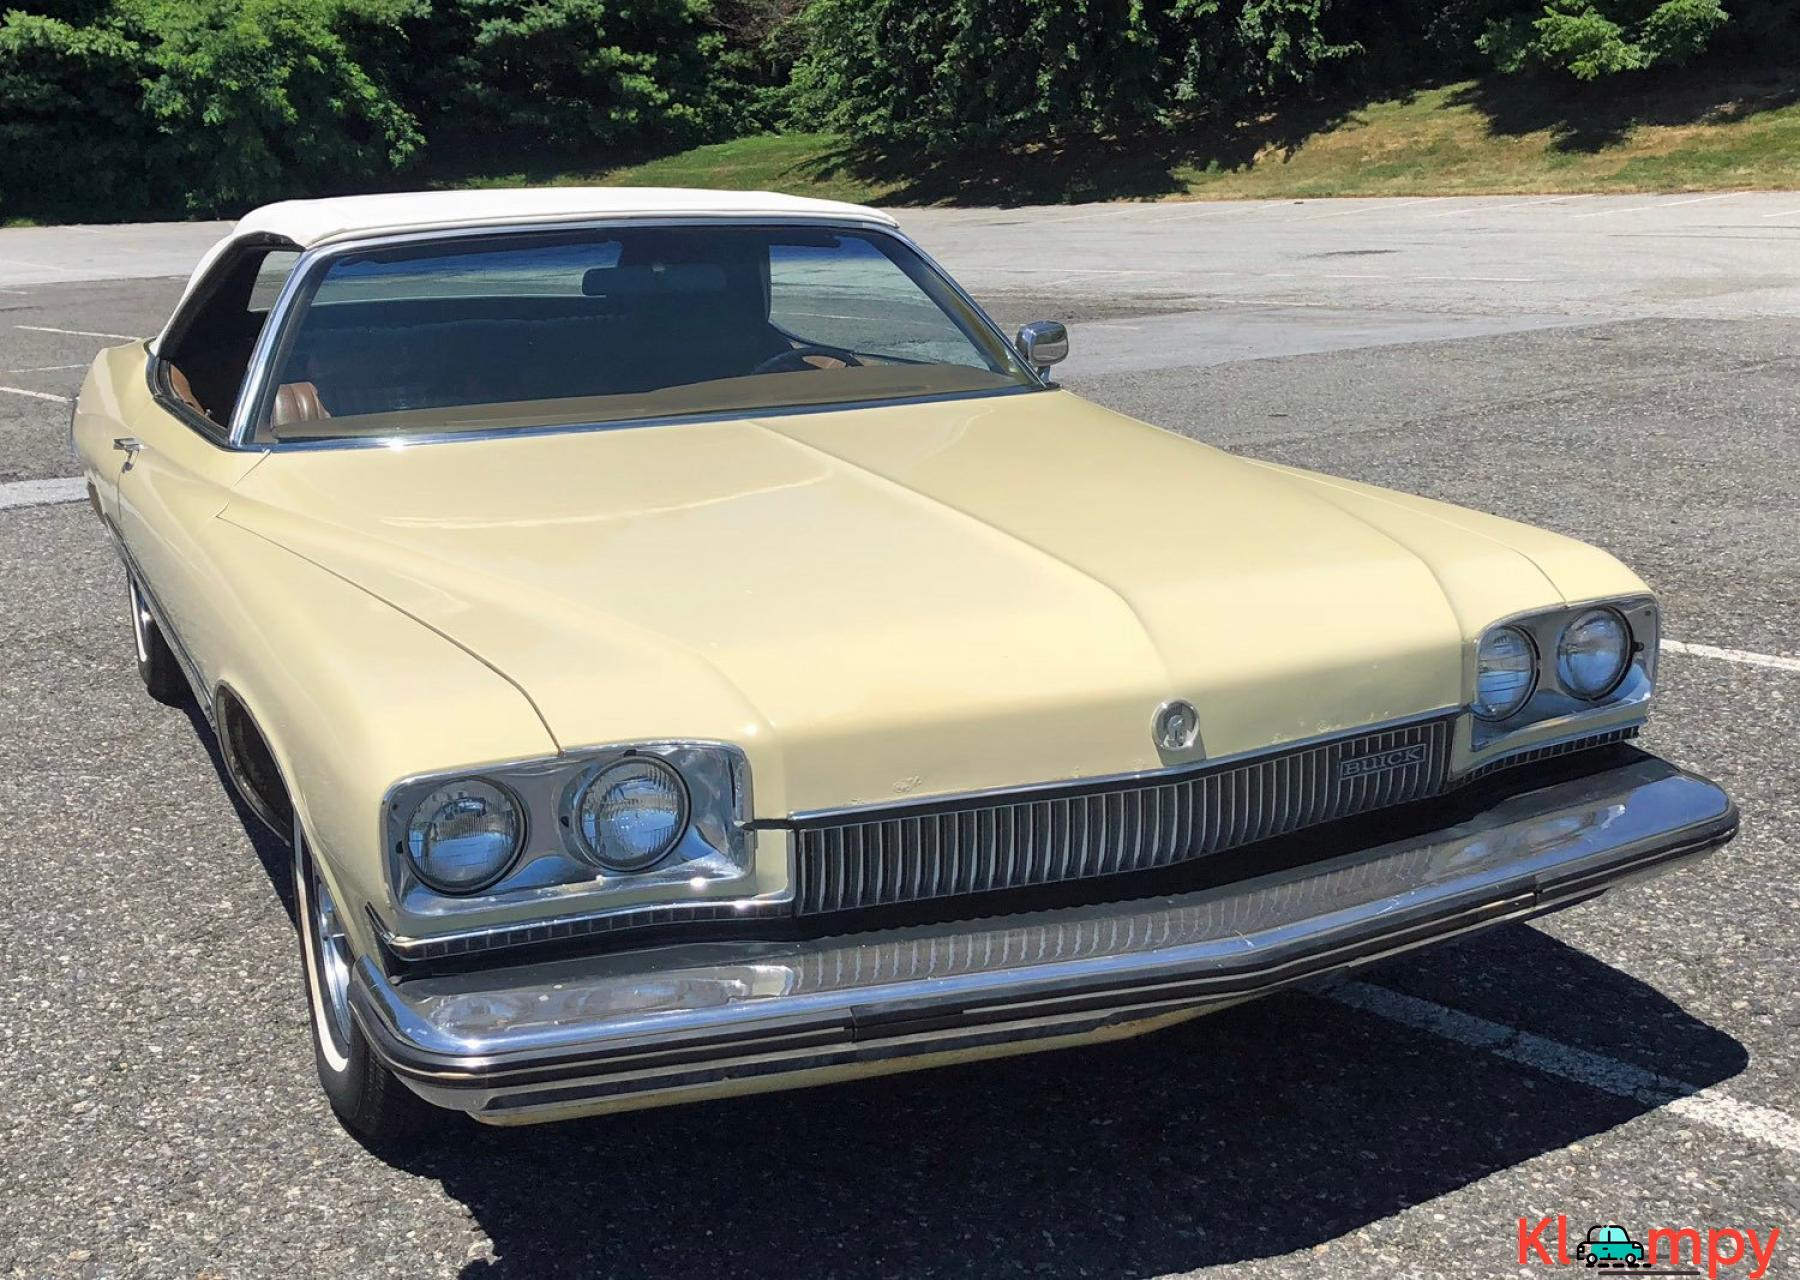 1973 Buick Centurion 350 Convertible V8 - 4/20